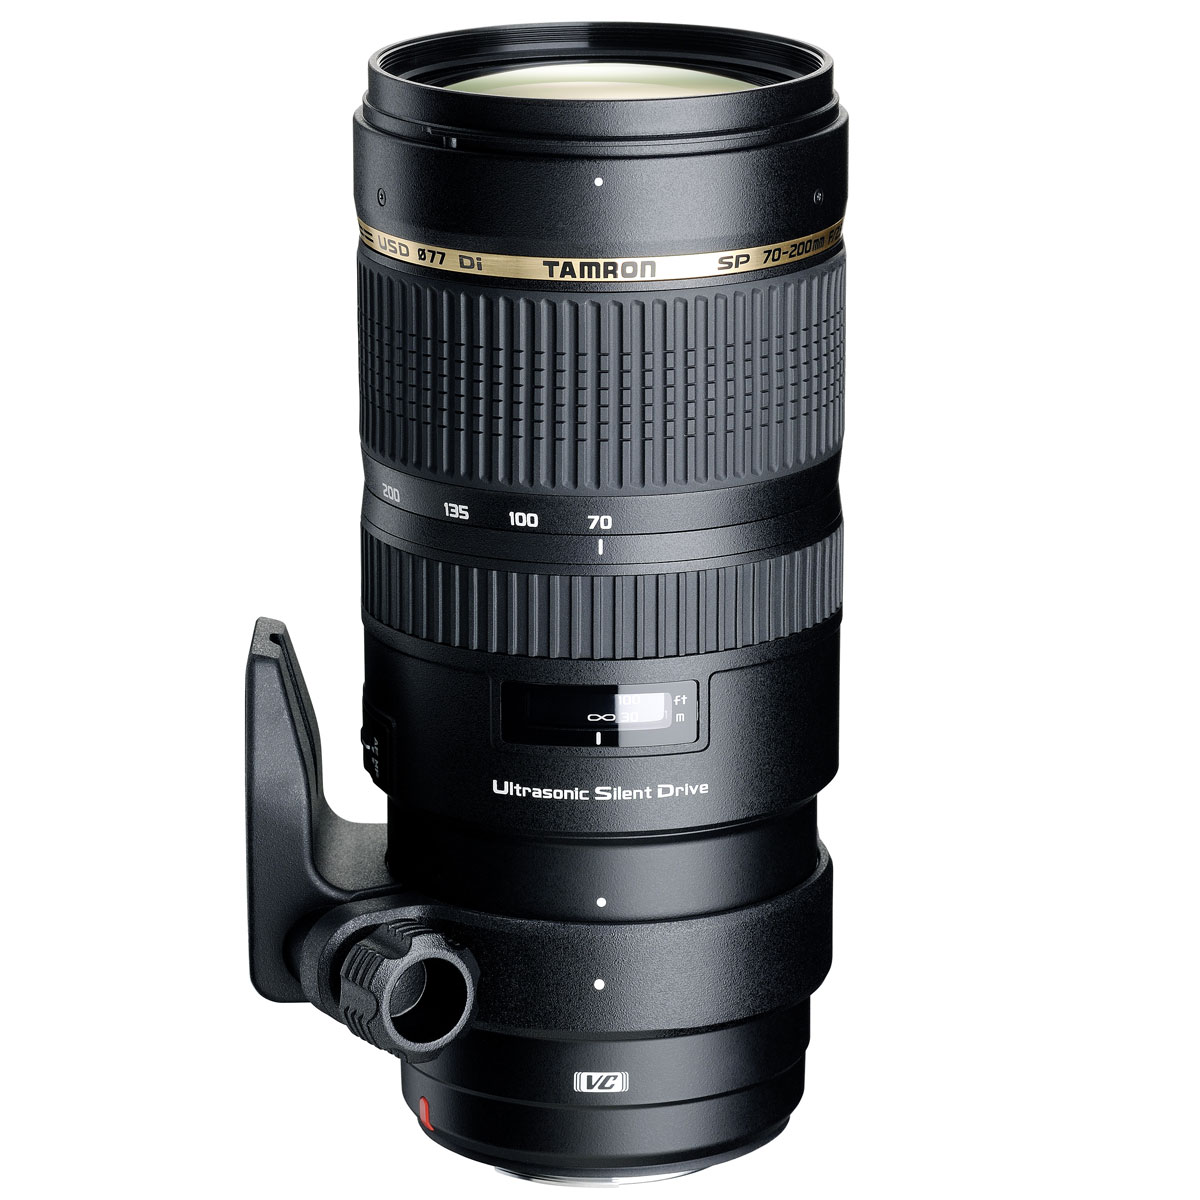 Tamron SP 70-200mm F/2.8 Di VC USD, Canon объектив